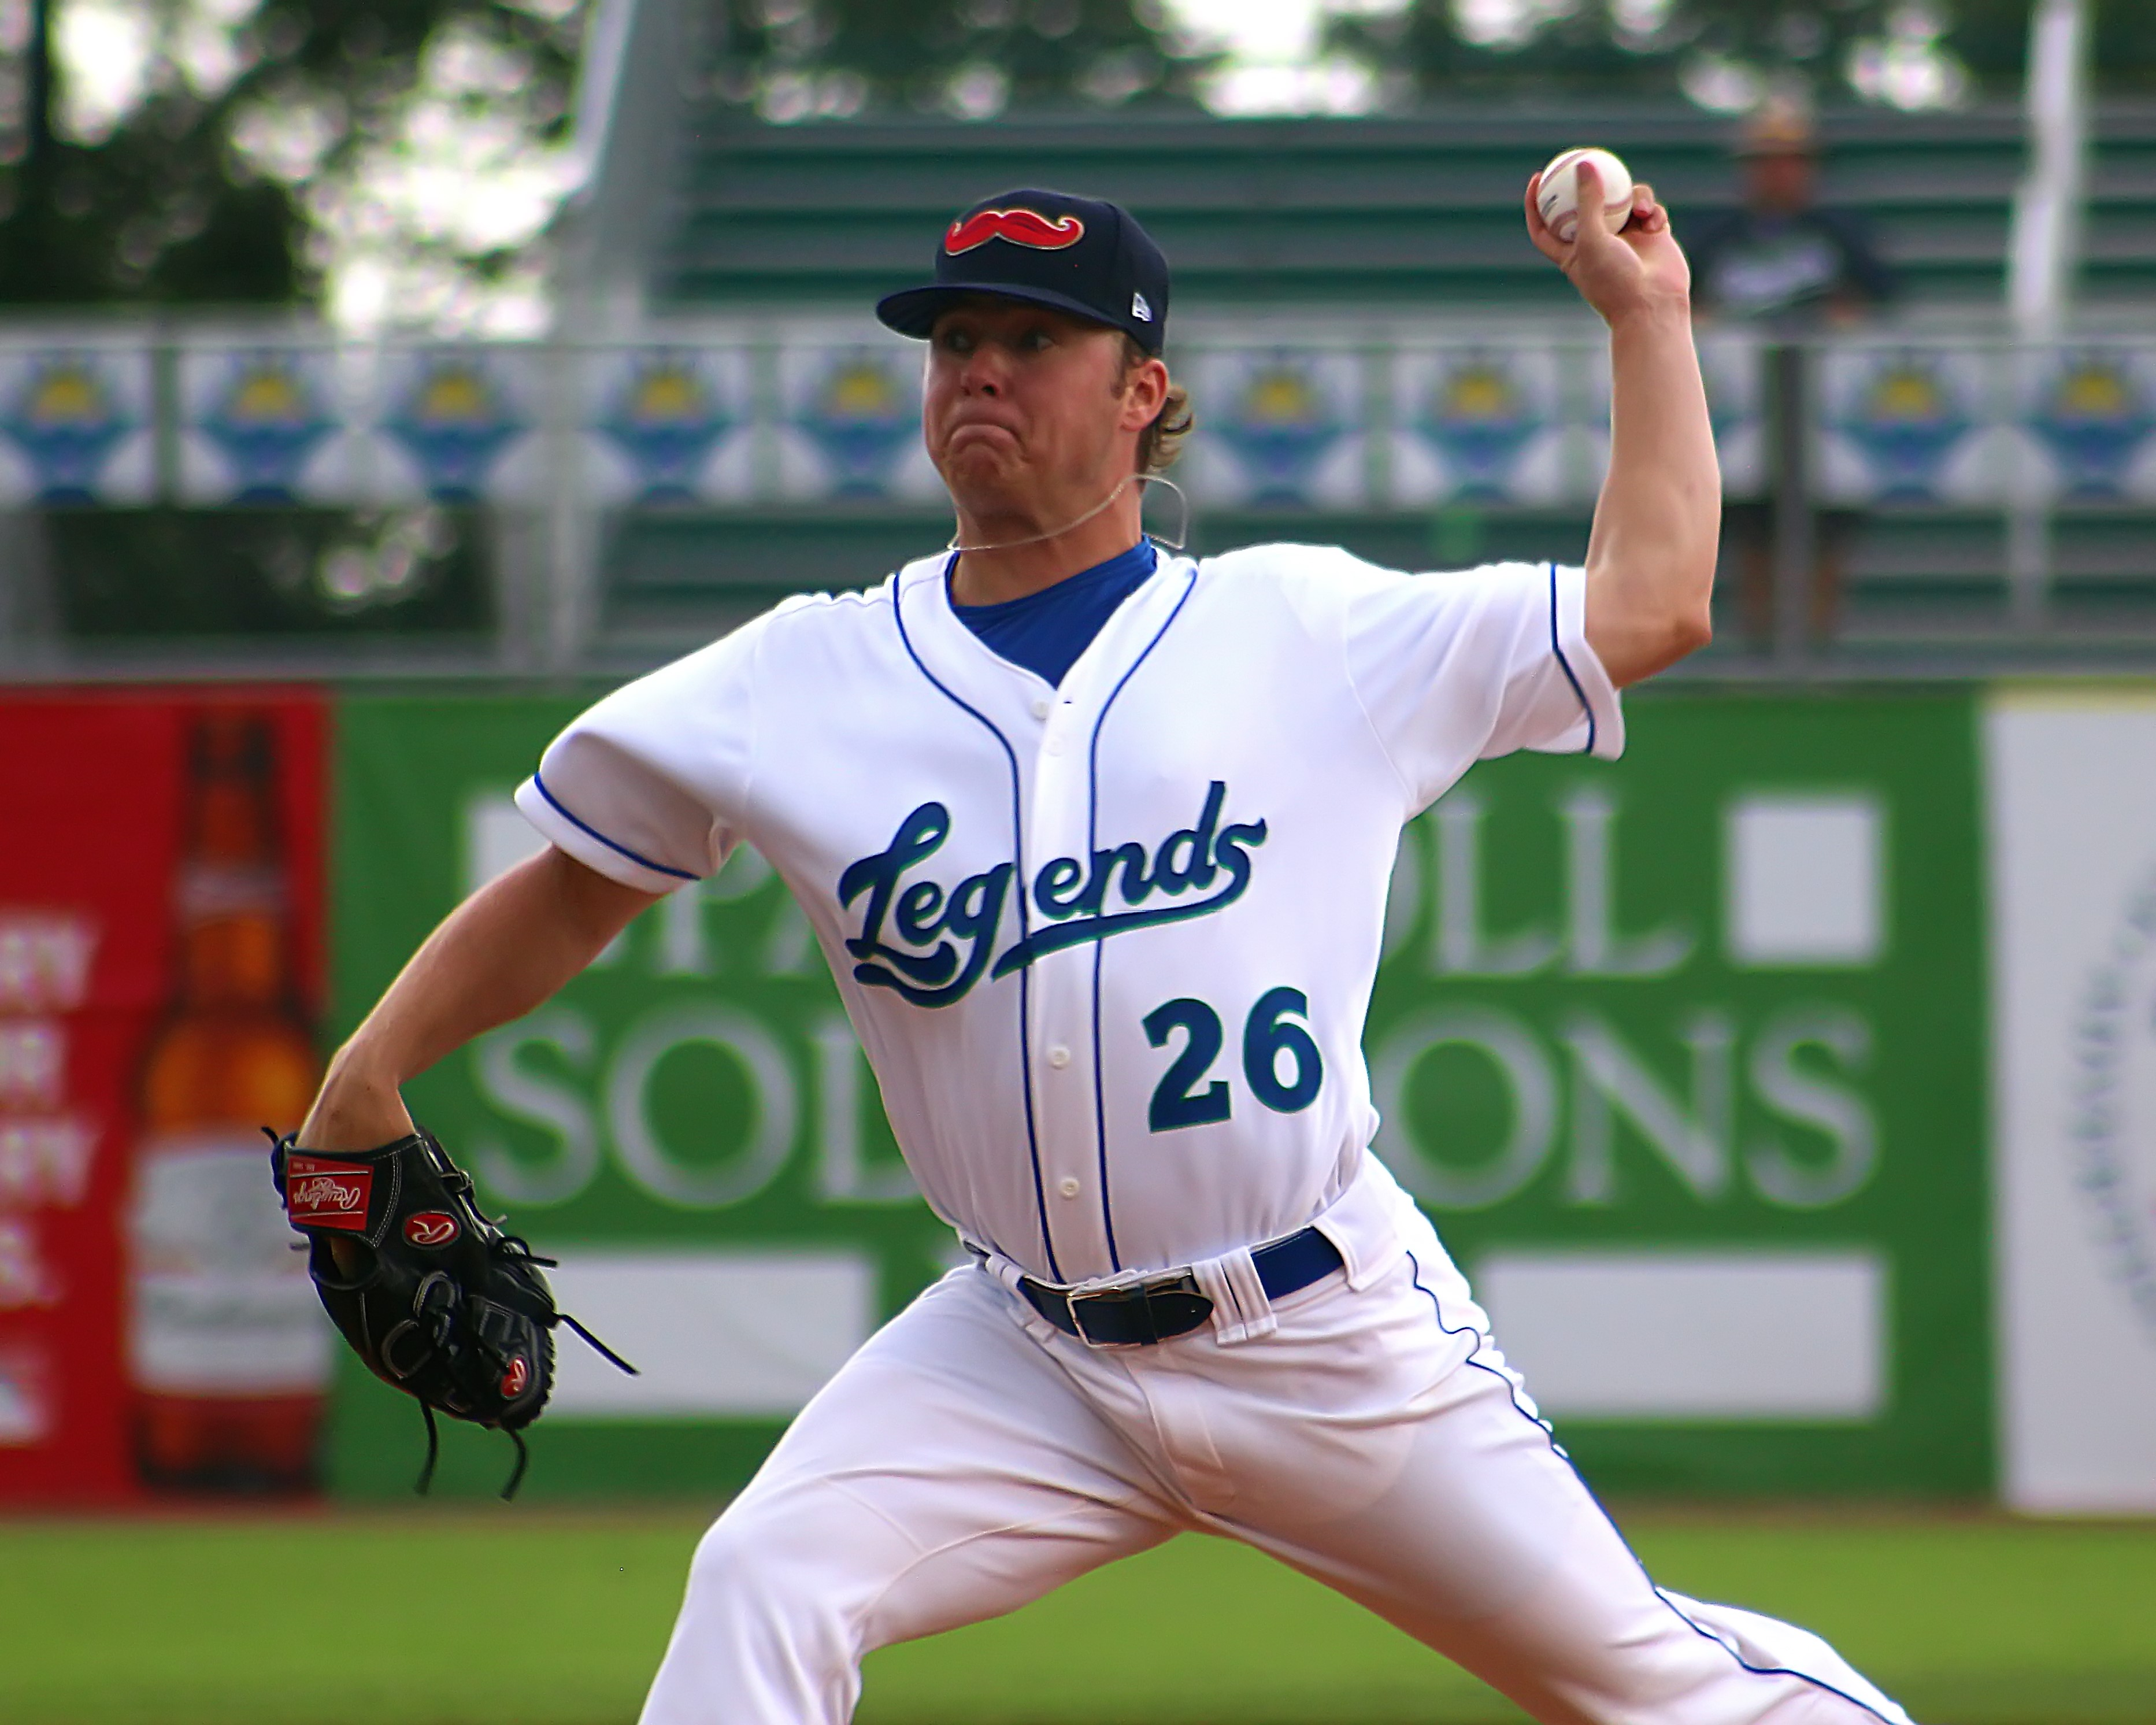 Capps in the midst of a dominant performance vs. the Asheville Tourists; 4 IP, 1 H, 0 R, 0 BB, 7 K. (Photo: Clinton Riddle)